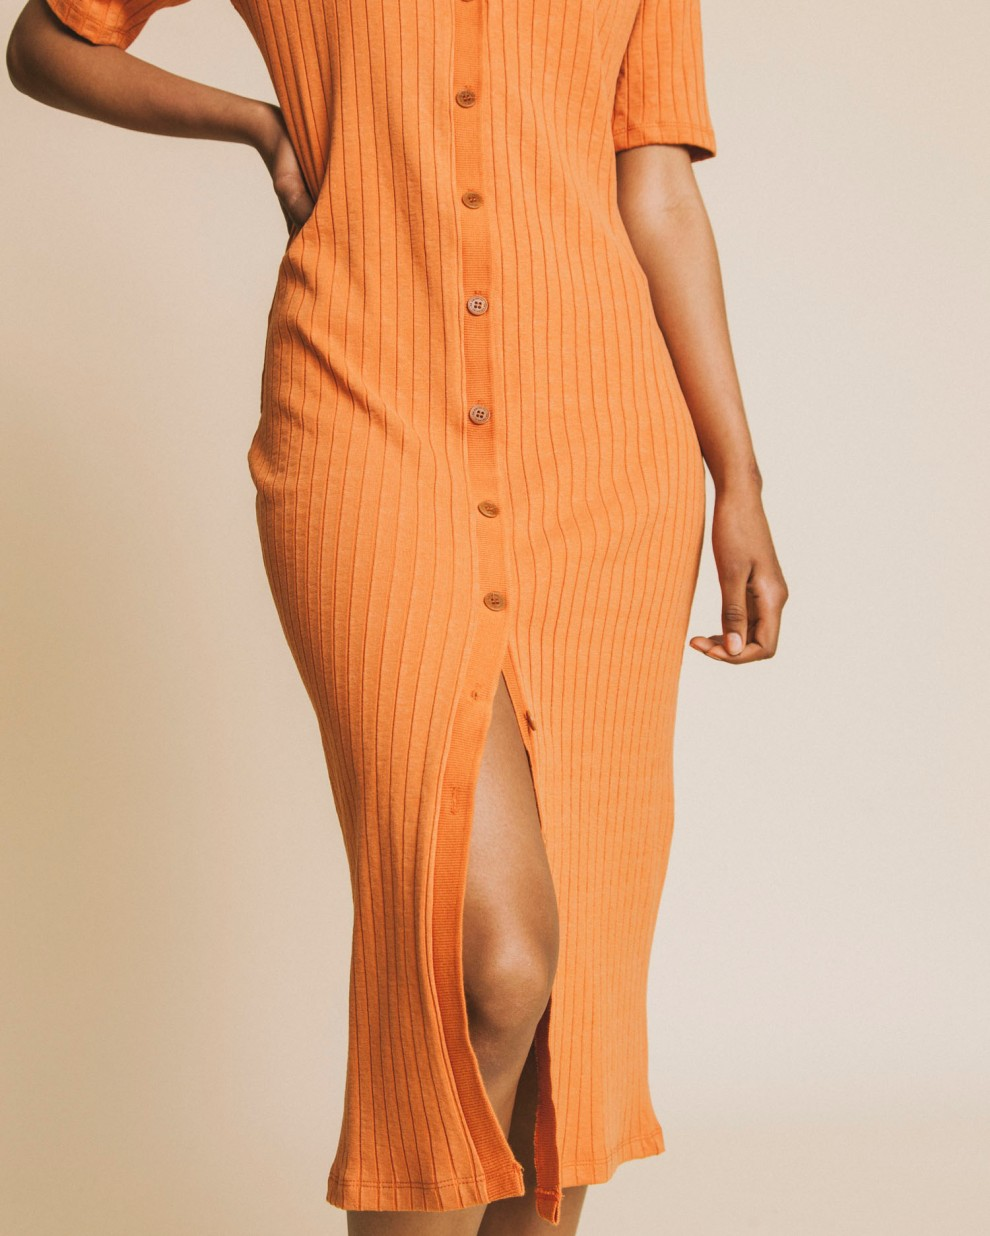 Terracotta Jur dress